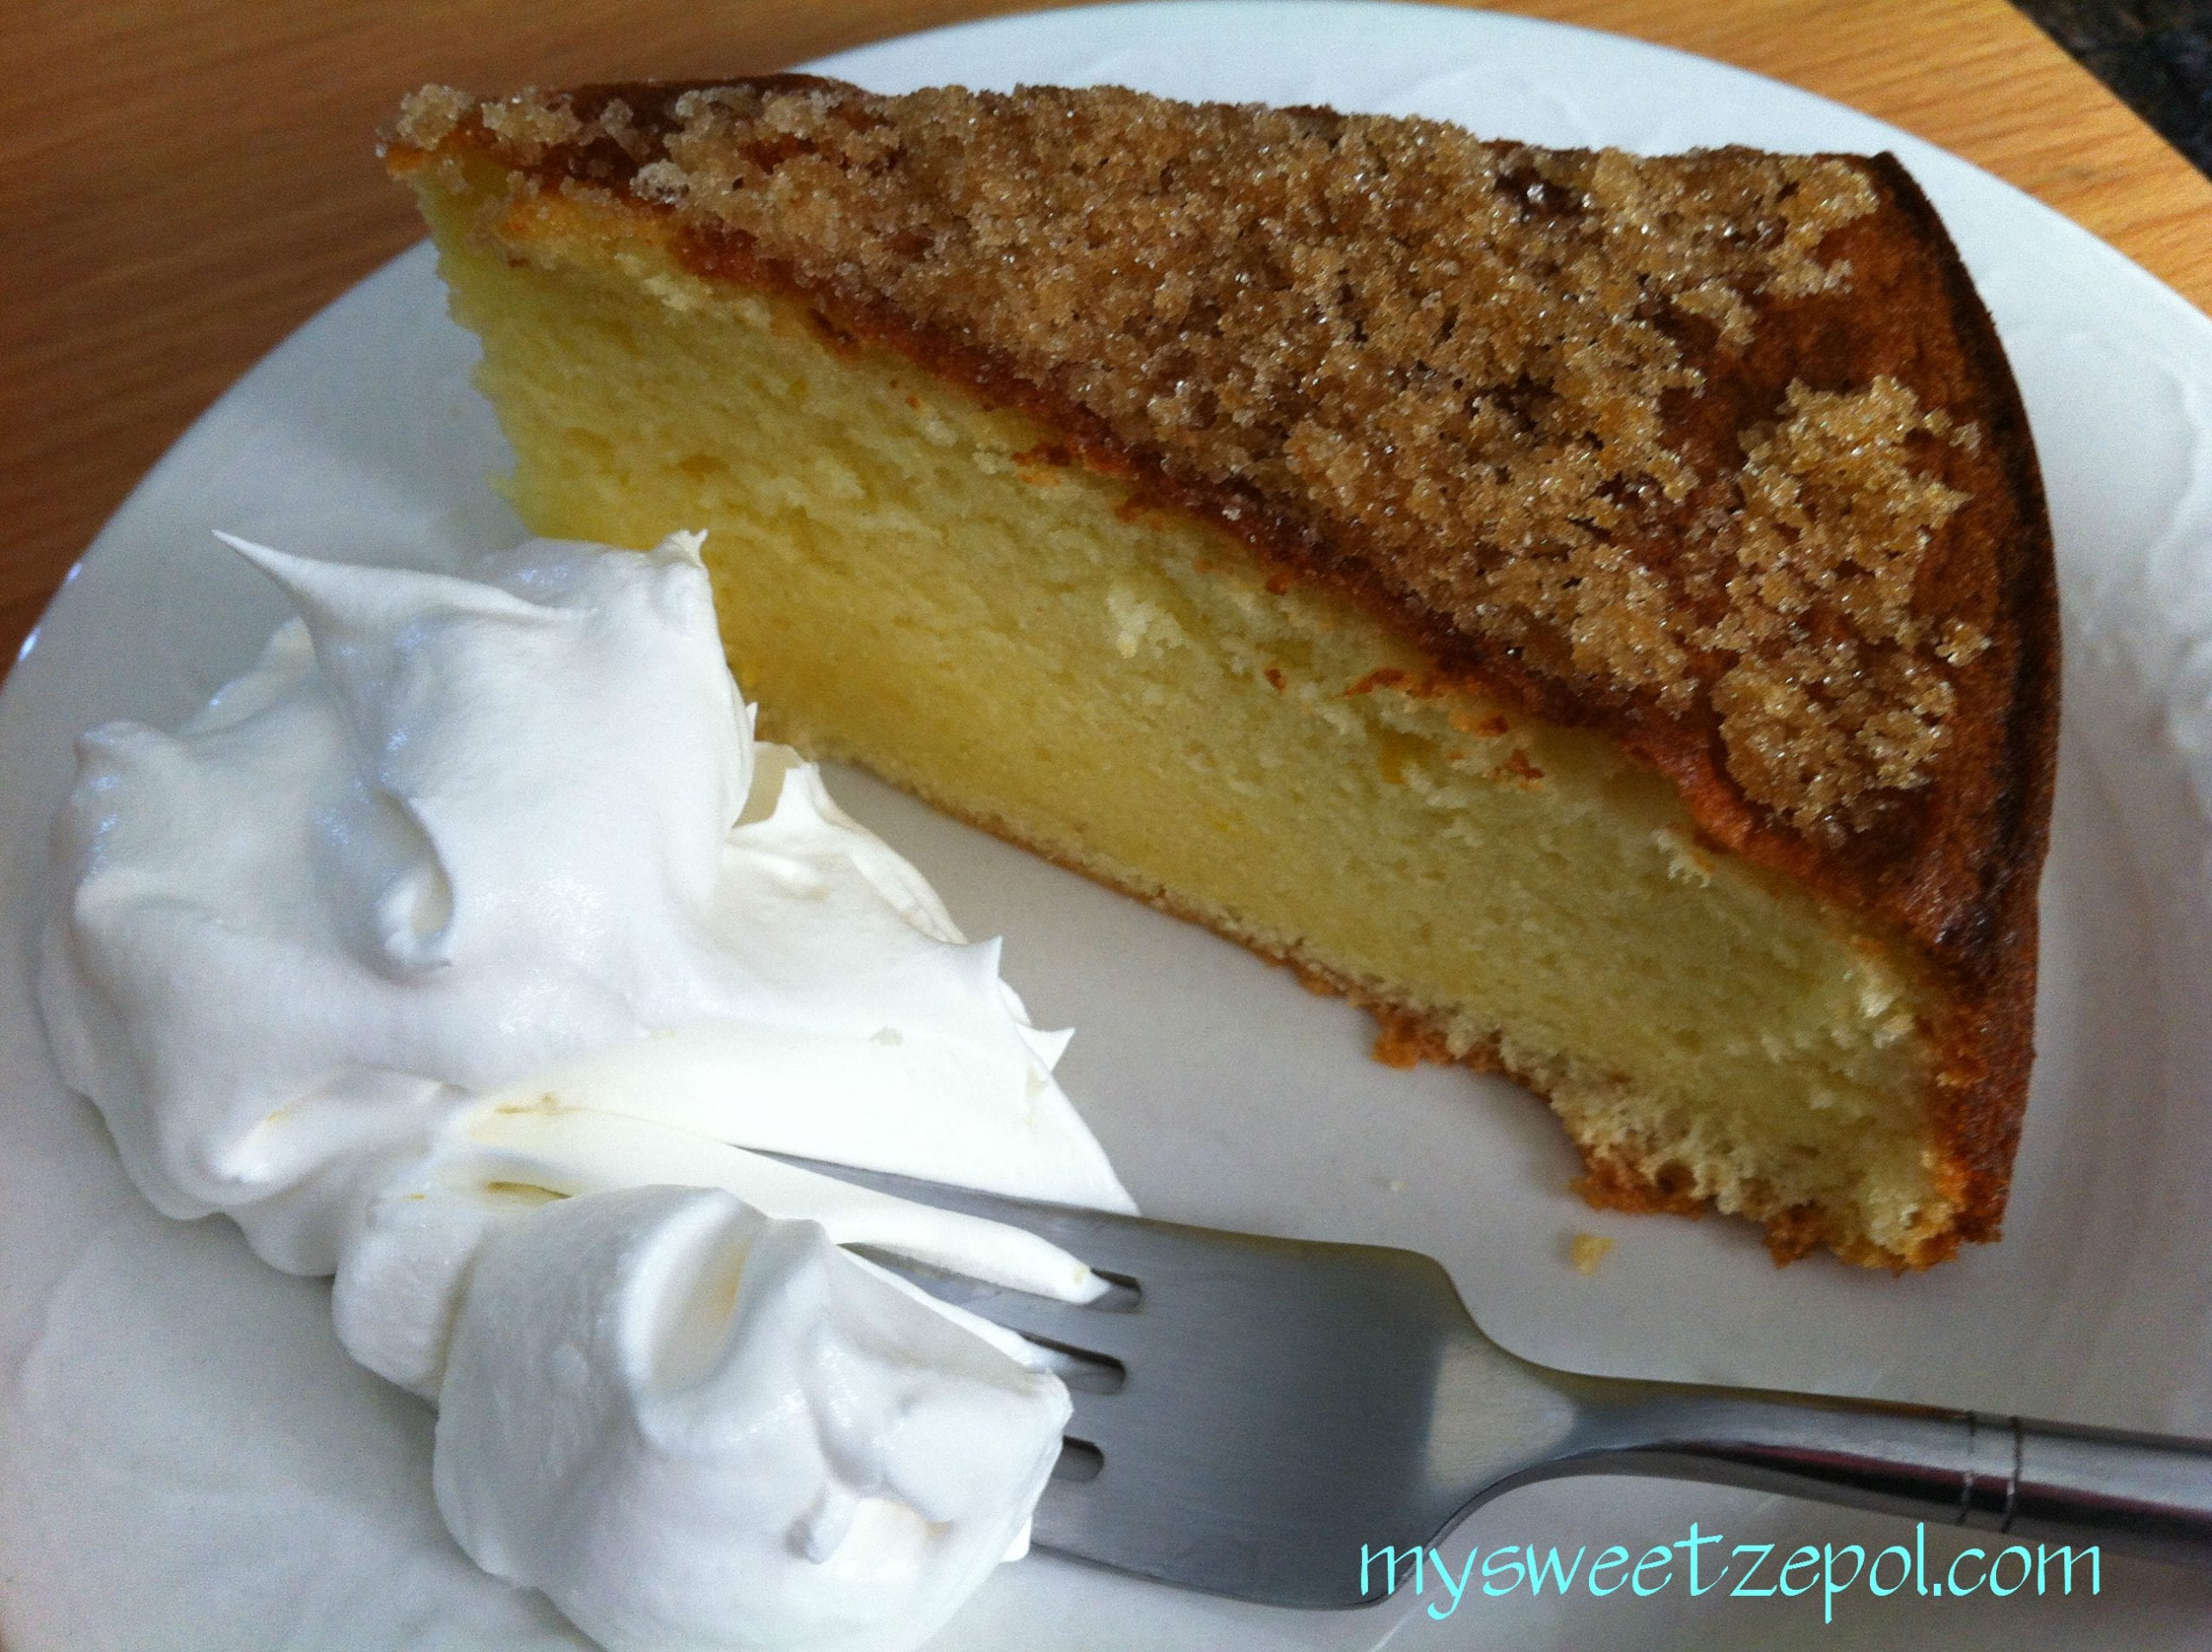 Olive Oil Cake with Brown Sugar - My Sweet Zepol